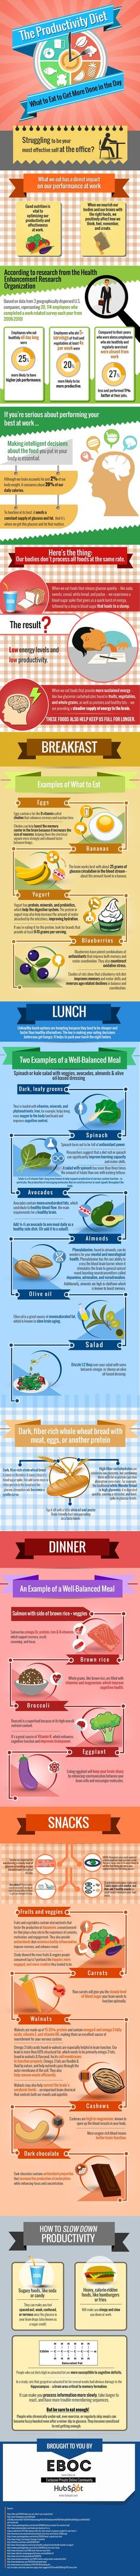 Food infographic   productivity_diet…   Infographic   Description  productivity_diet    – Infographic Source –   - #Food